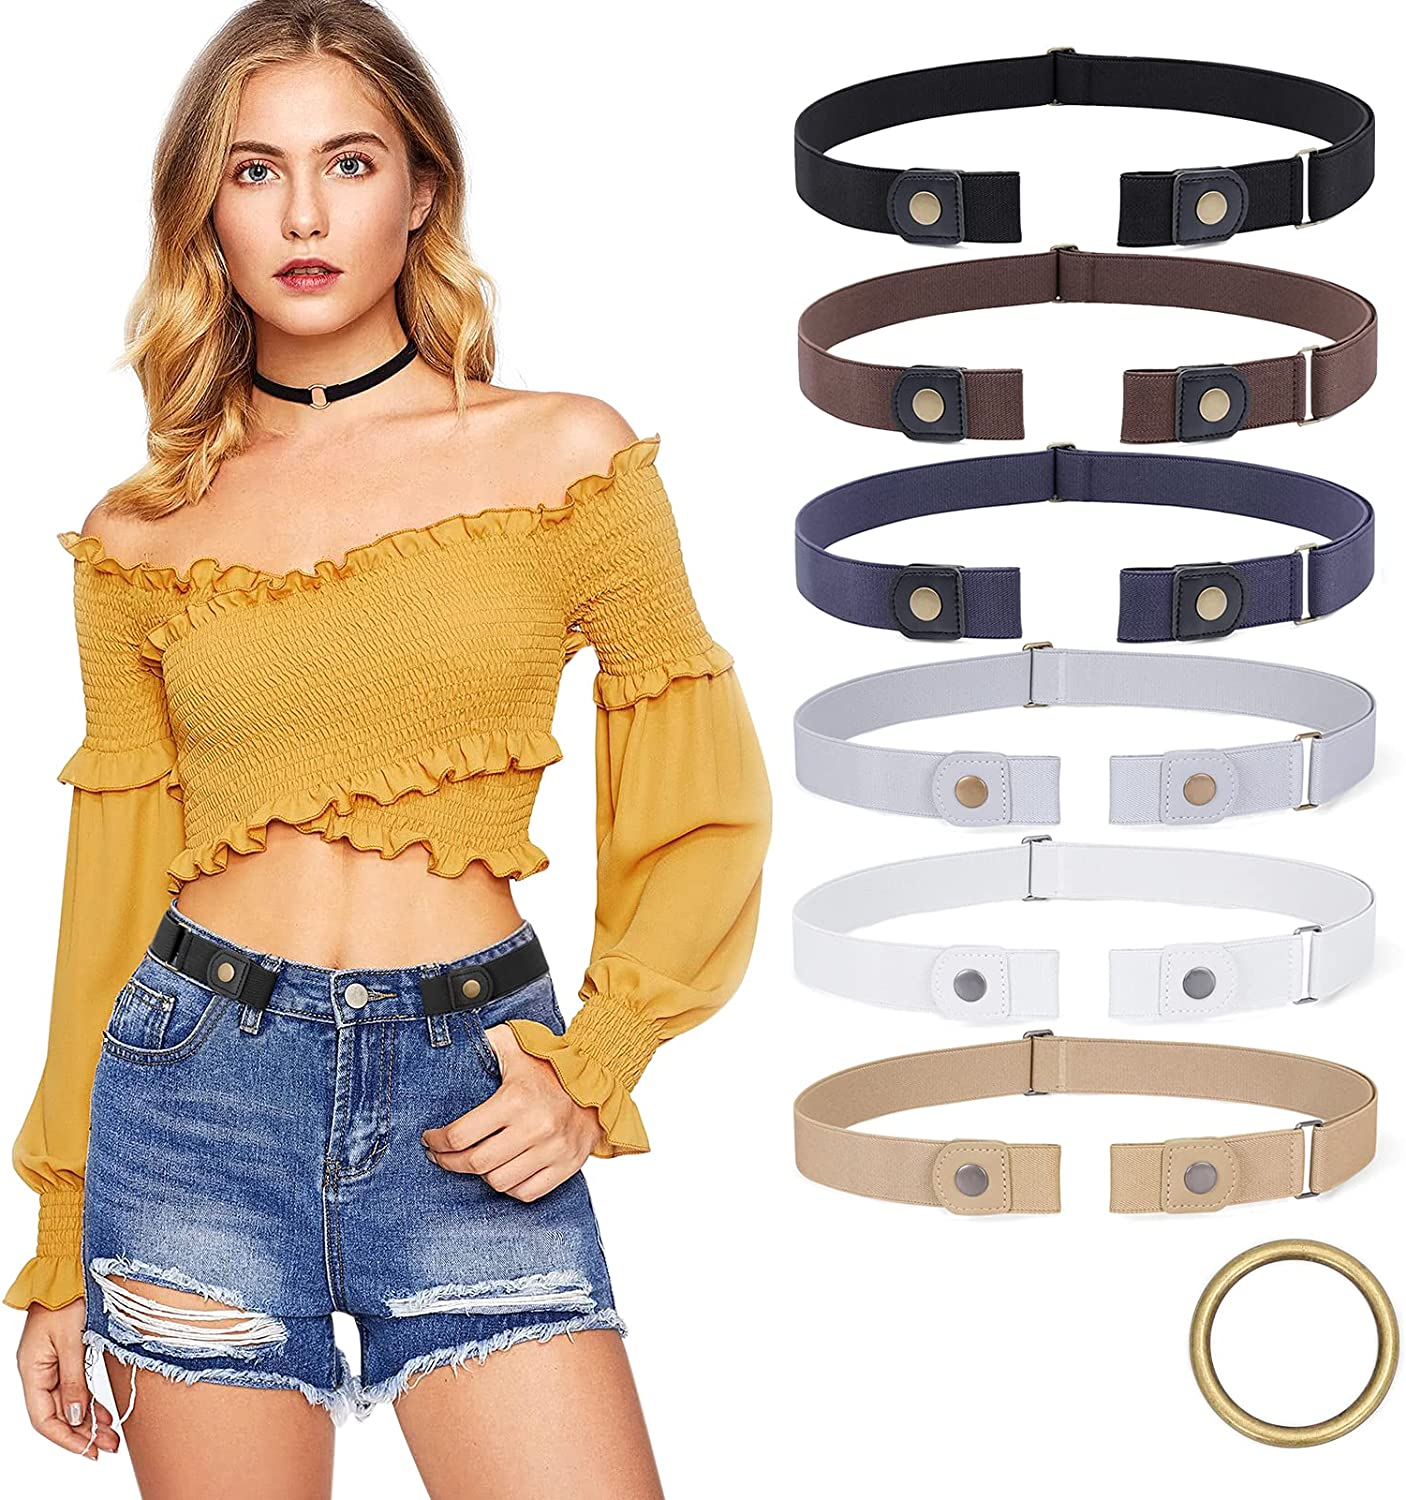 6 pieces Weekly update No Popular product Buckle Stretch Free for Men Women Belt